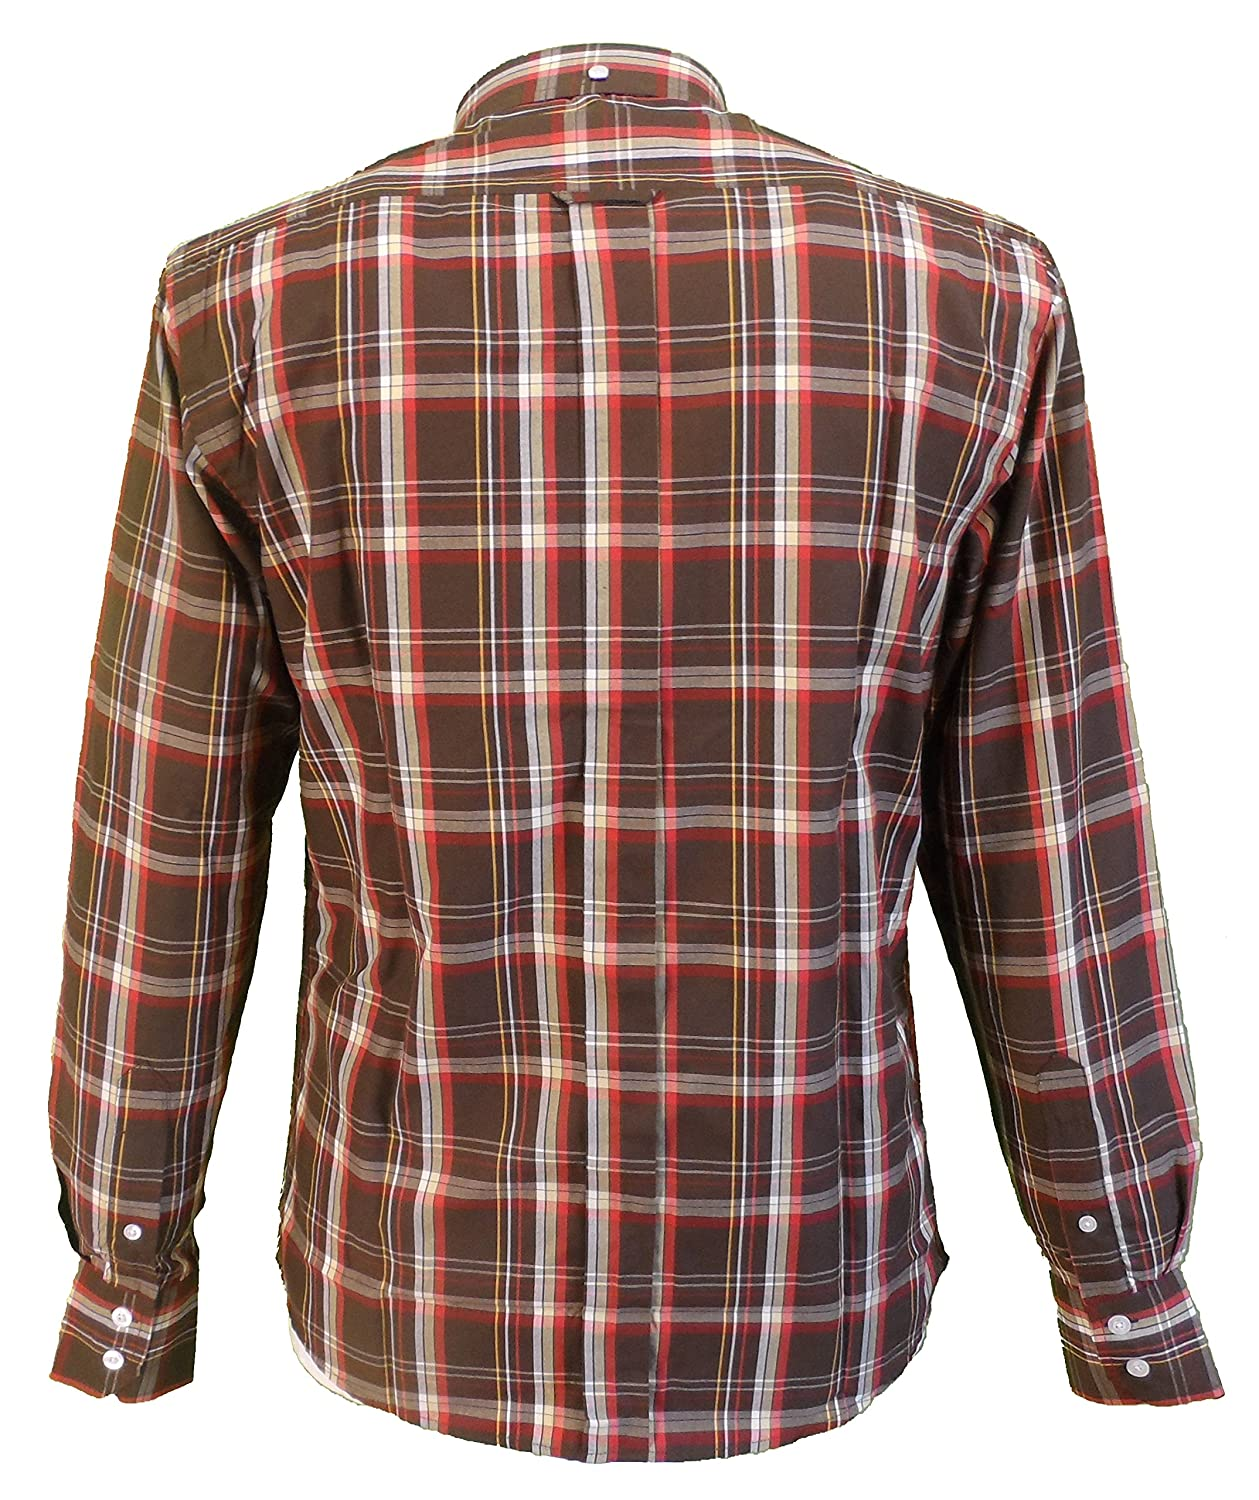 Relco Brown Checked PolyCotton Long Sleeved Vintage//Retro Mod Button Down shirt